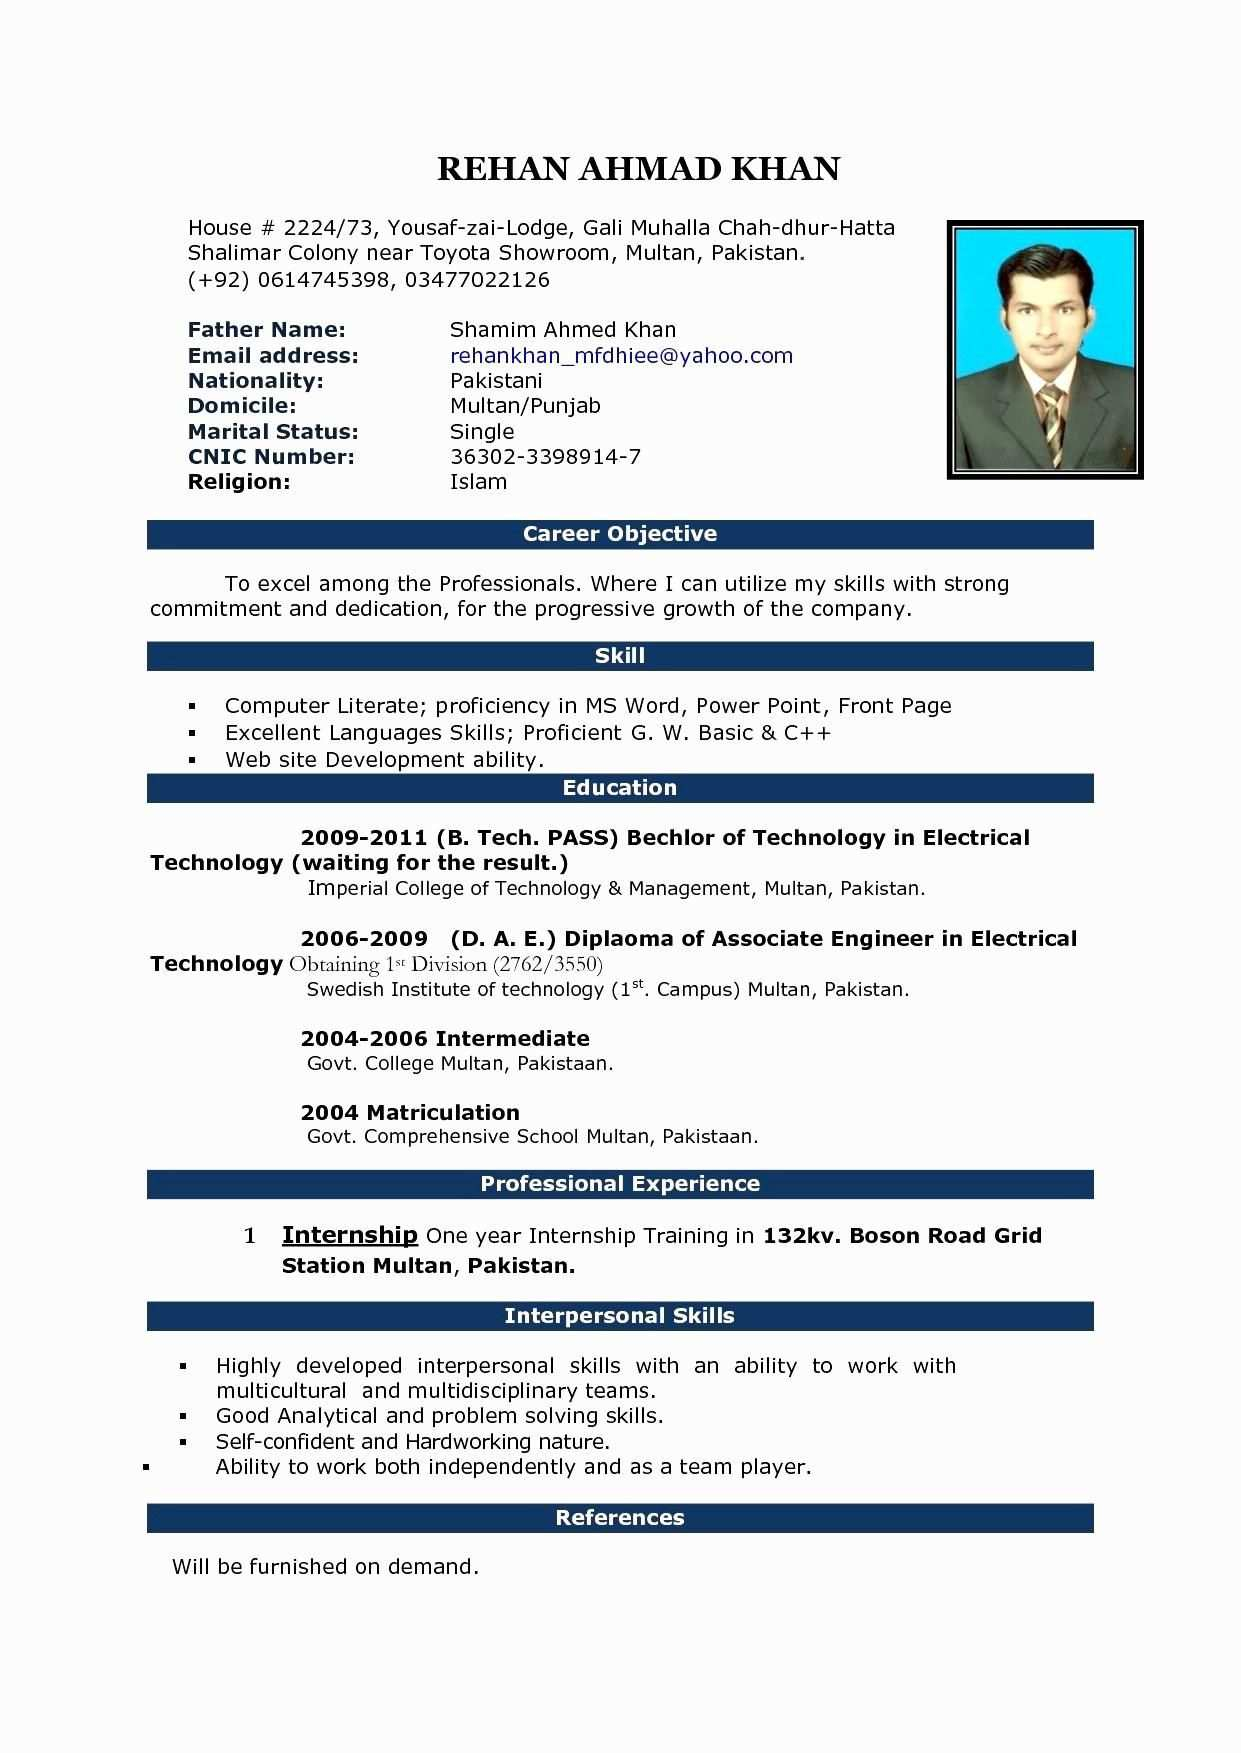 Technology Resume Template Word - √ Resume In Word format Unique Best Pr Resume Template Elegant